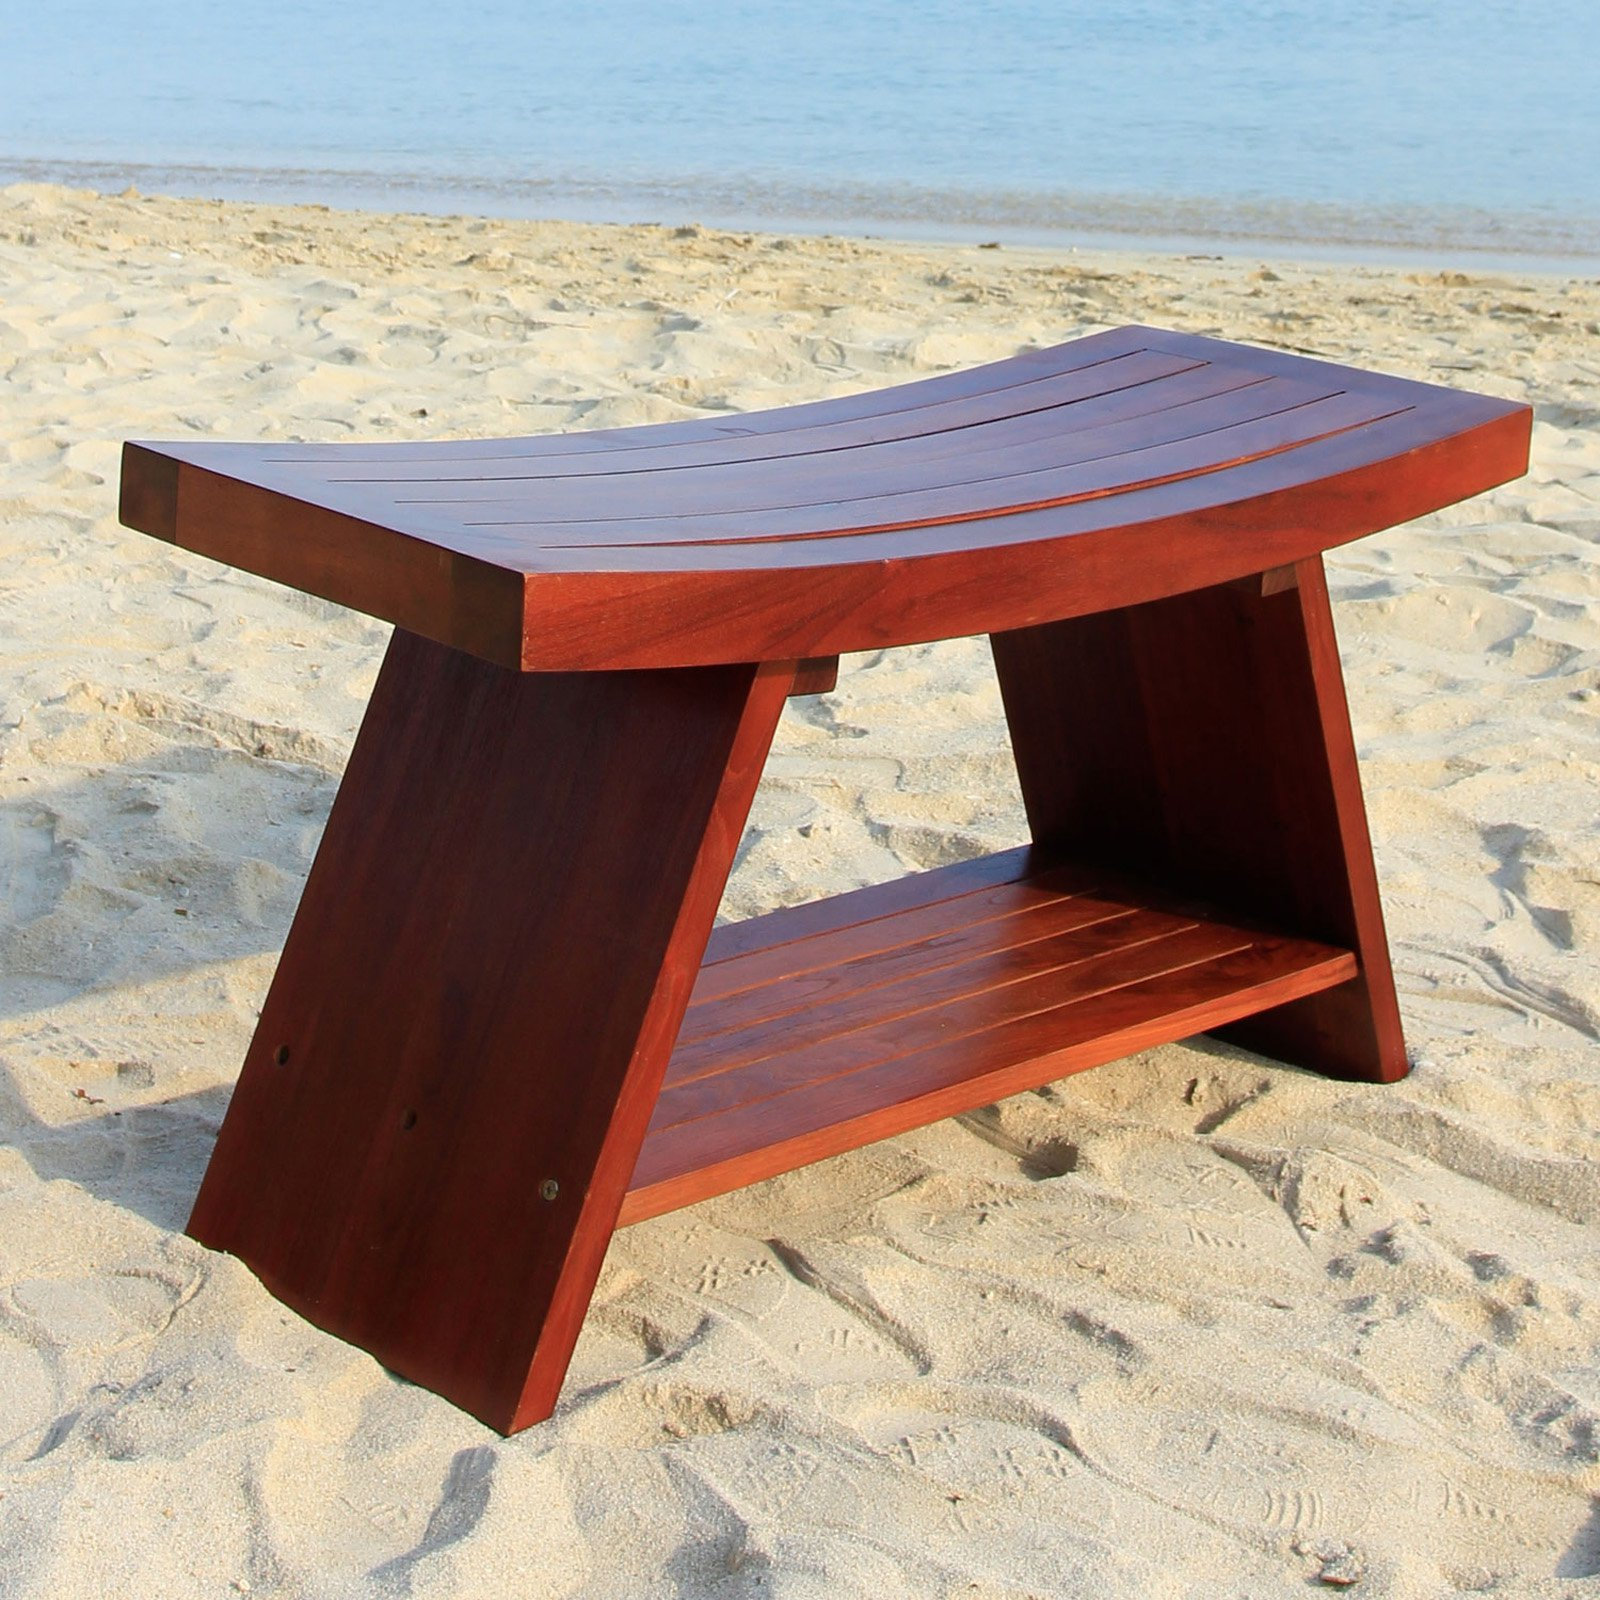 Asia 35 in. Teak Serenity Shower Bench w Shelf